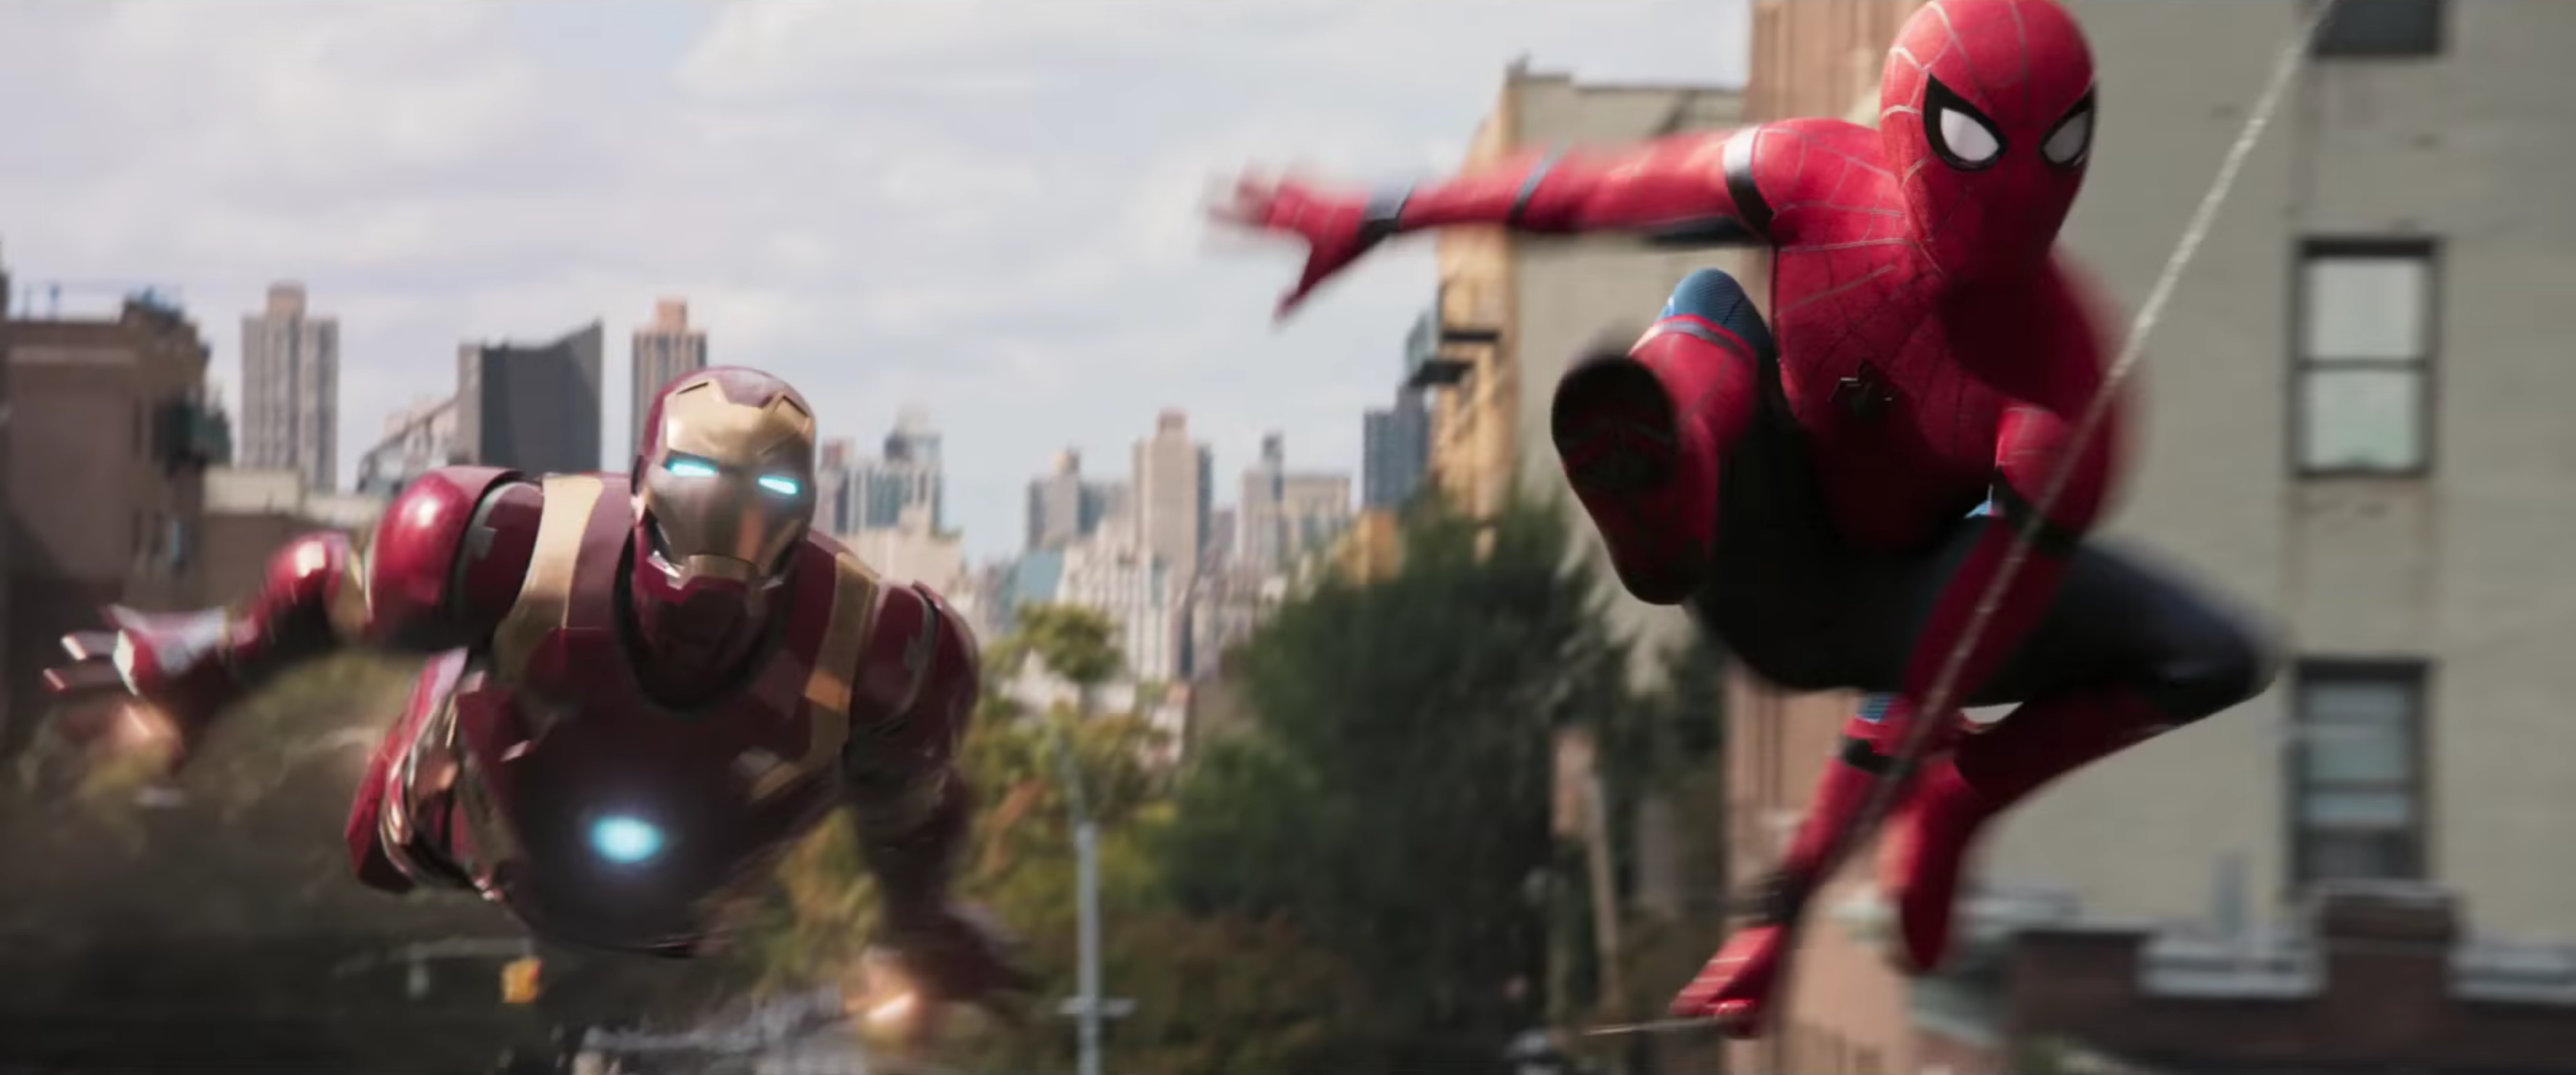 spider-man-homecoming-09dezembro2016-05